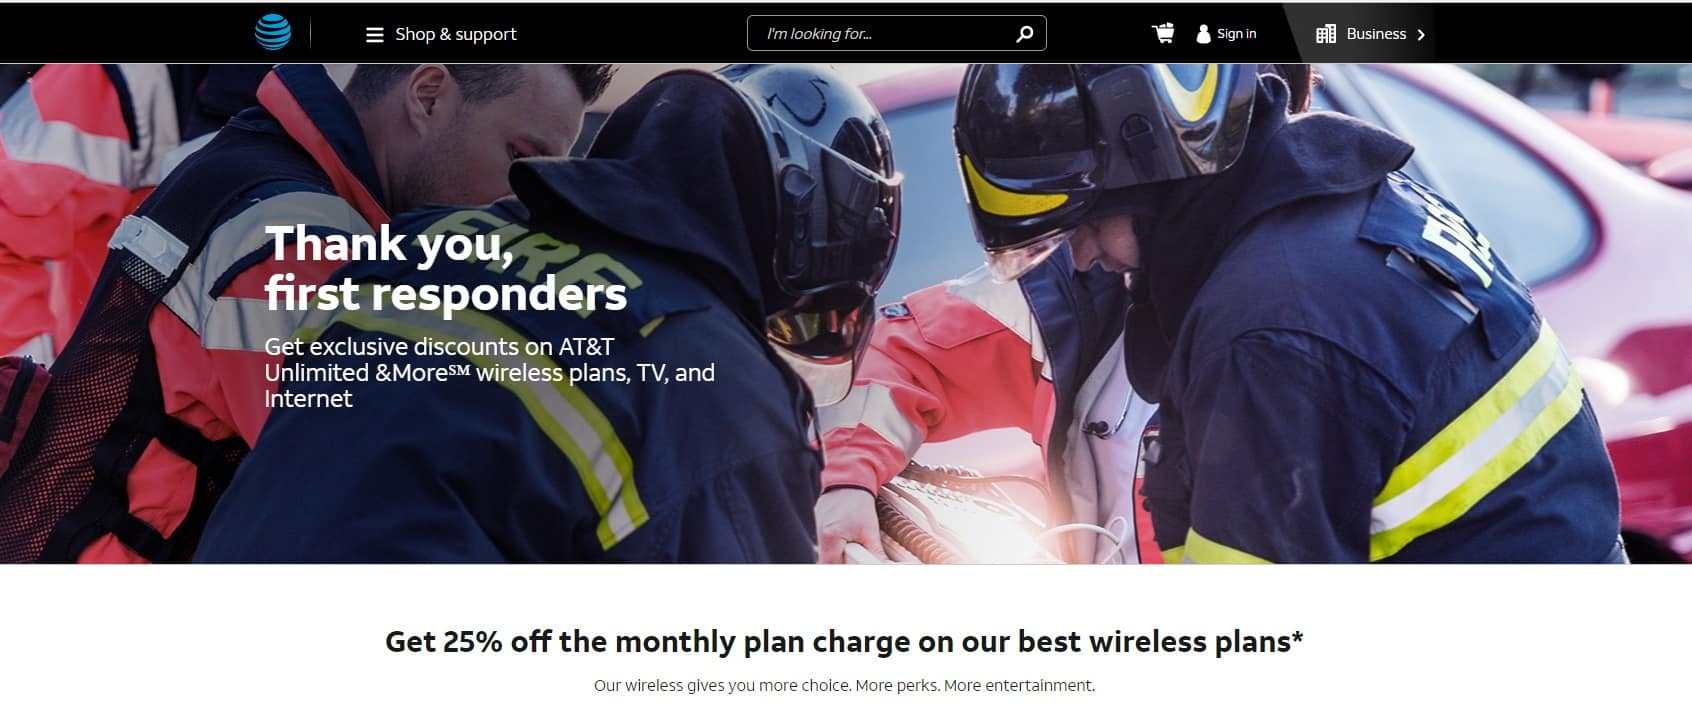 First Responders and their families:  Get 25% off new AT&T Unlimited wireless plans $30